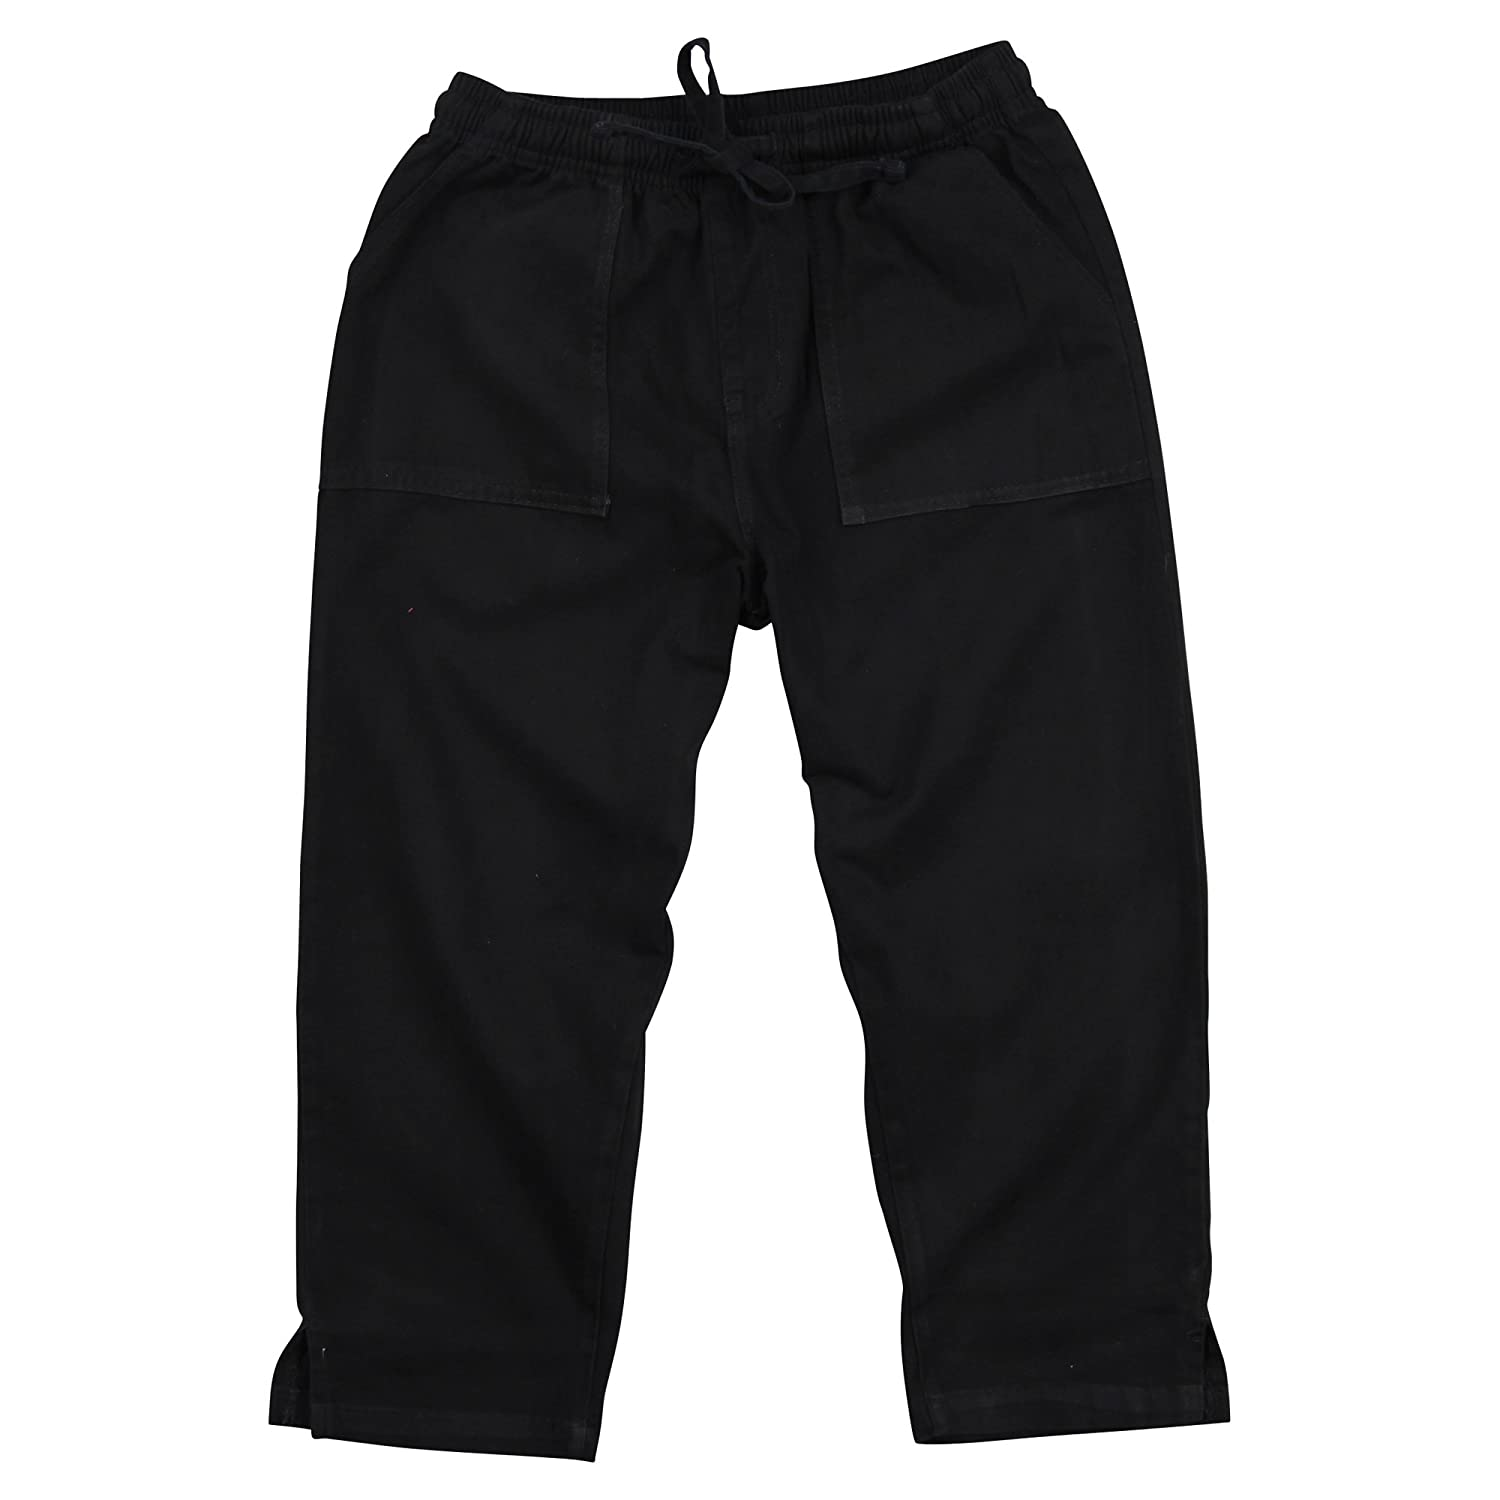 707a6762 Solid color capri pants are made of 100% Cotton, while the denim capris are  made of 95% Cotton / 5% Spandex Drawstring closure with an elastic  waistband ...